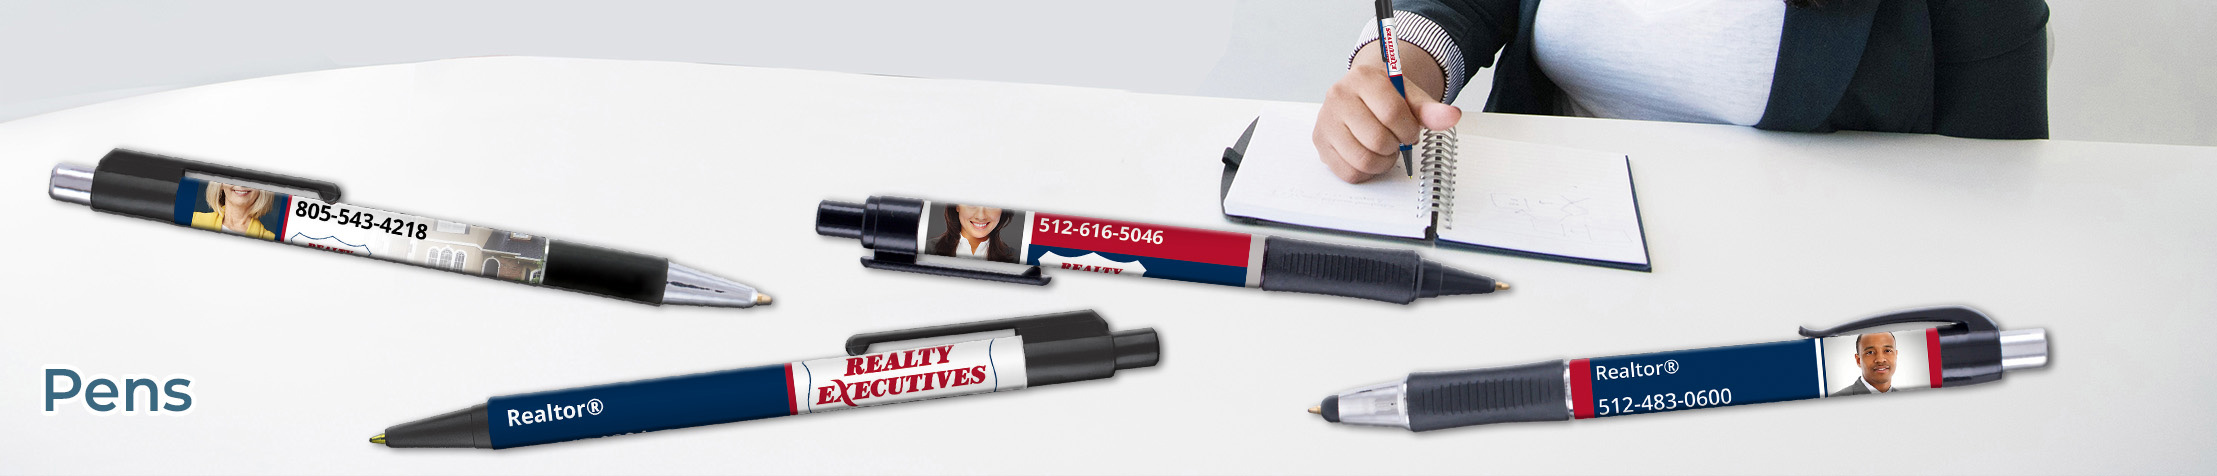 Realty Executives Real Estate Pens - Realty Executives personalized realtor promotional products | BestPrintBuy.com